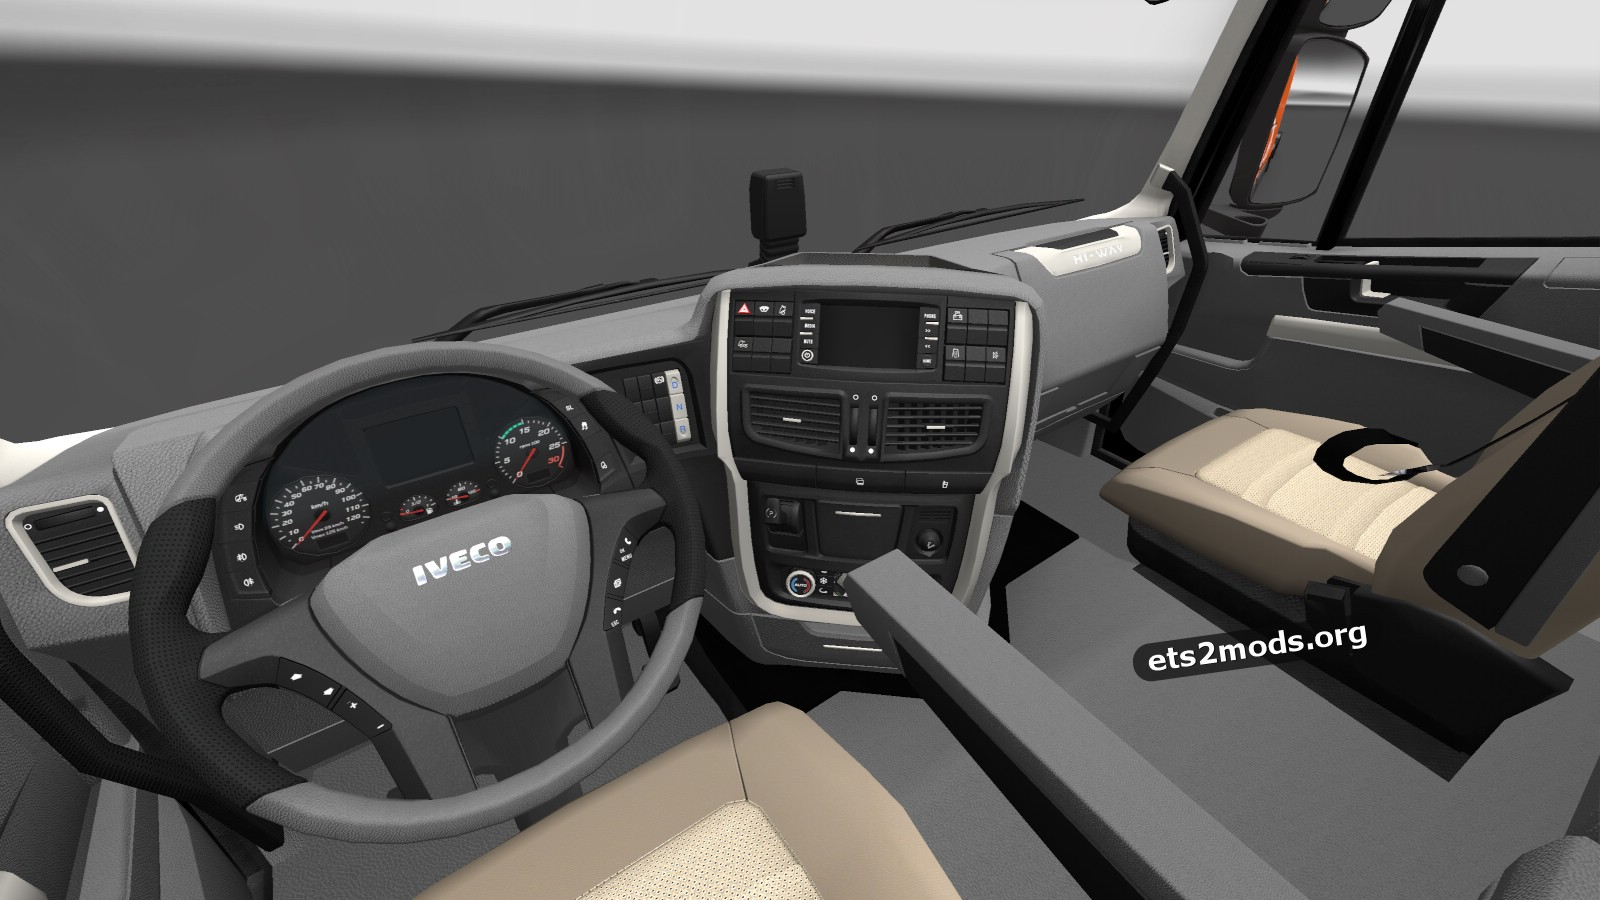 Iveco Hi-Way of the year 2013 skin and interior